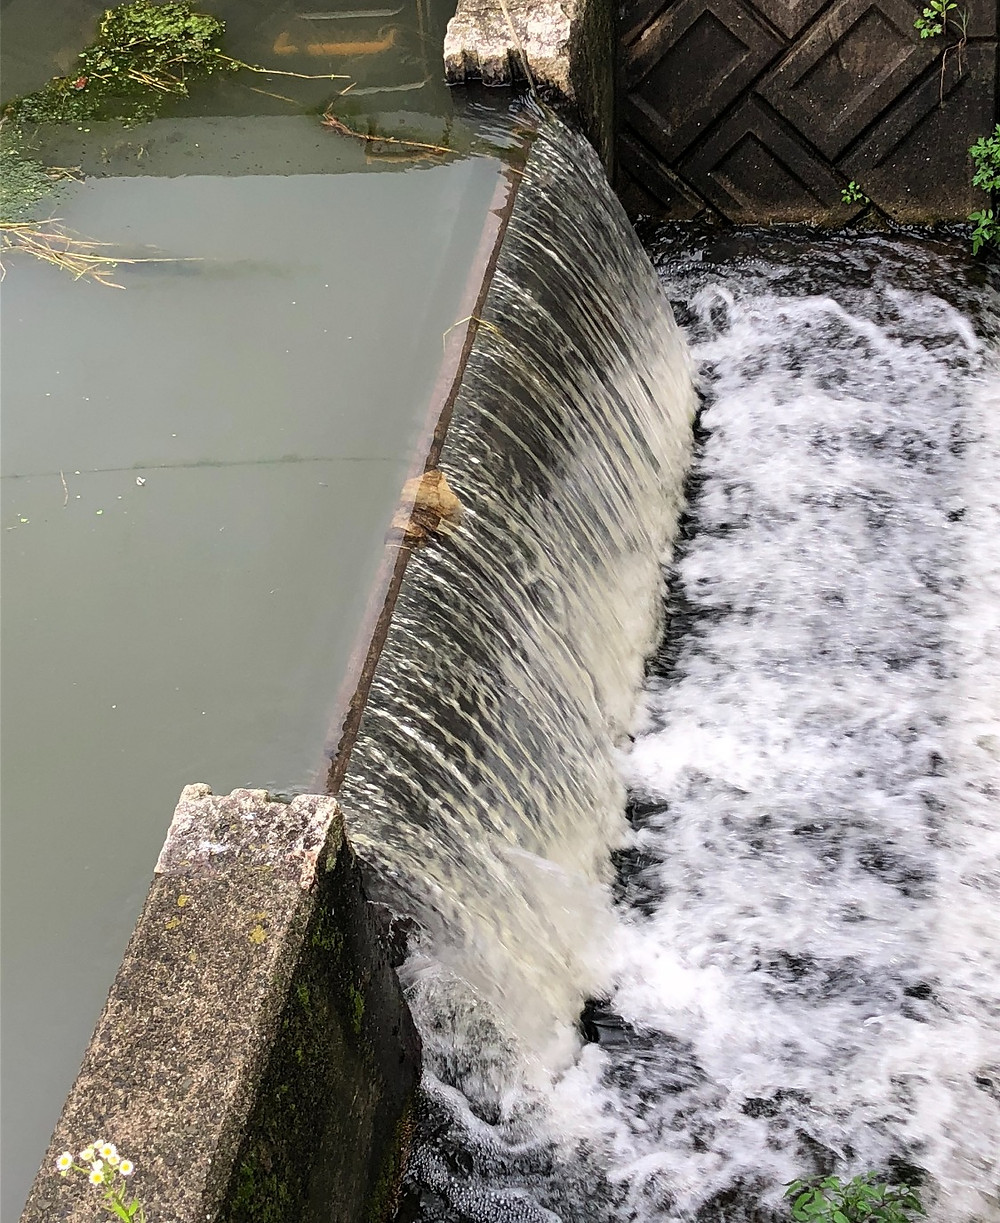 Water in the river after a rain